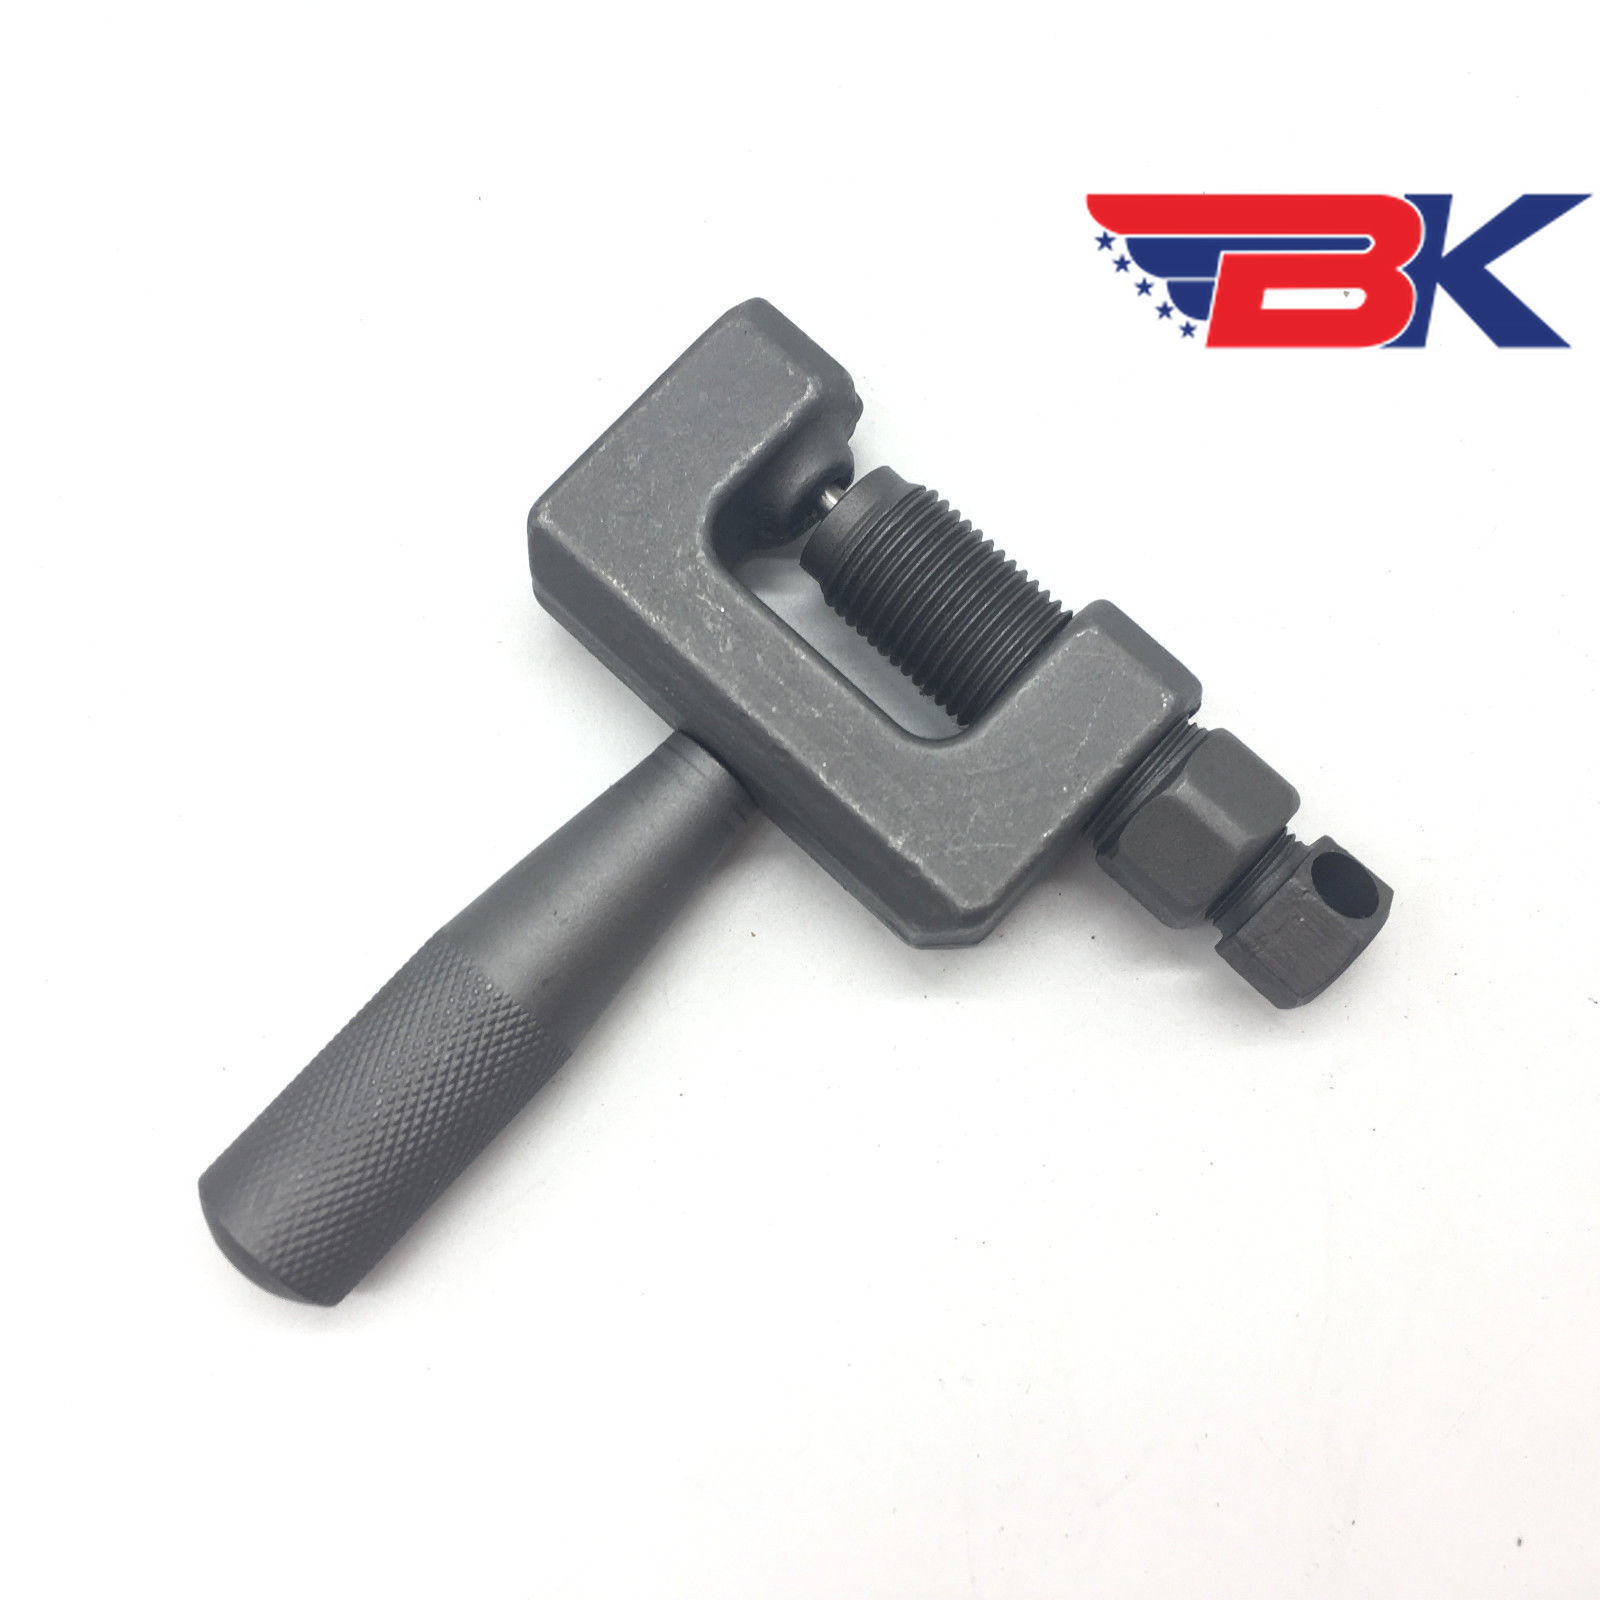 Motorcycle Bike Heavy Duty Chain Breaker Cutter Tool Riveting Tool 415 420 428 520 525 530 630 Wrench & Removal Tool Puller